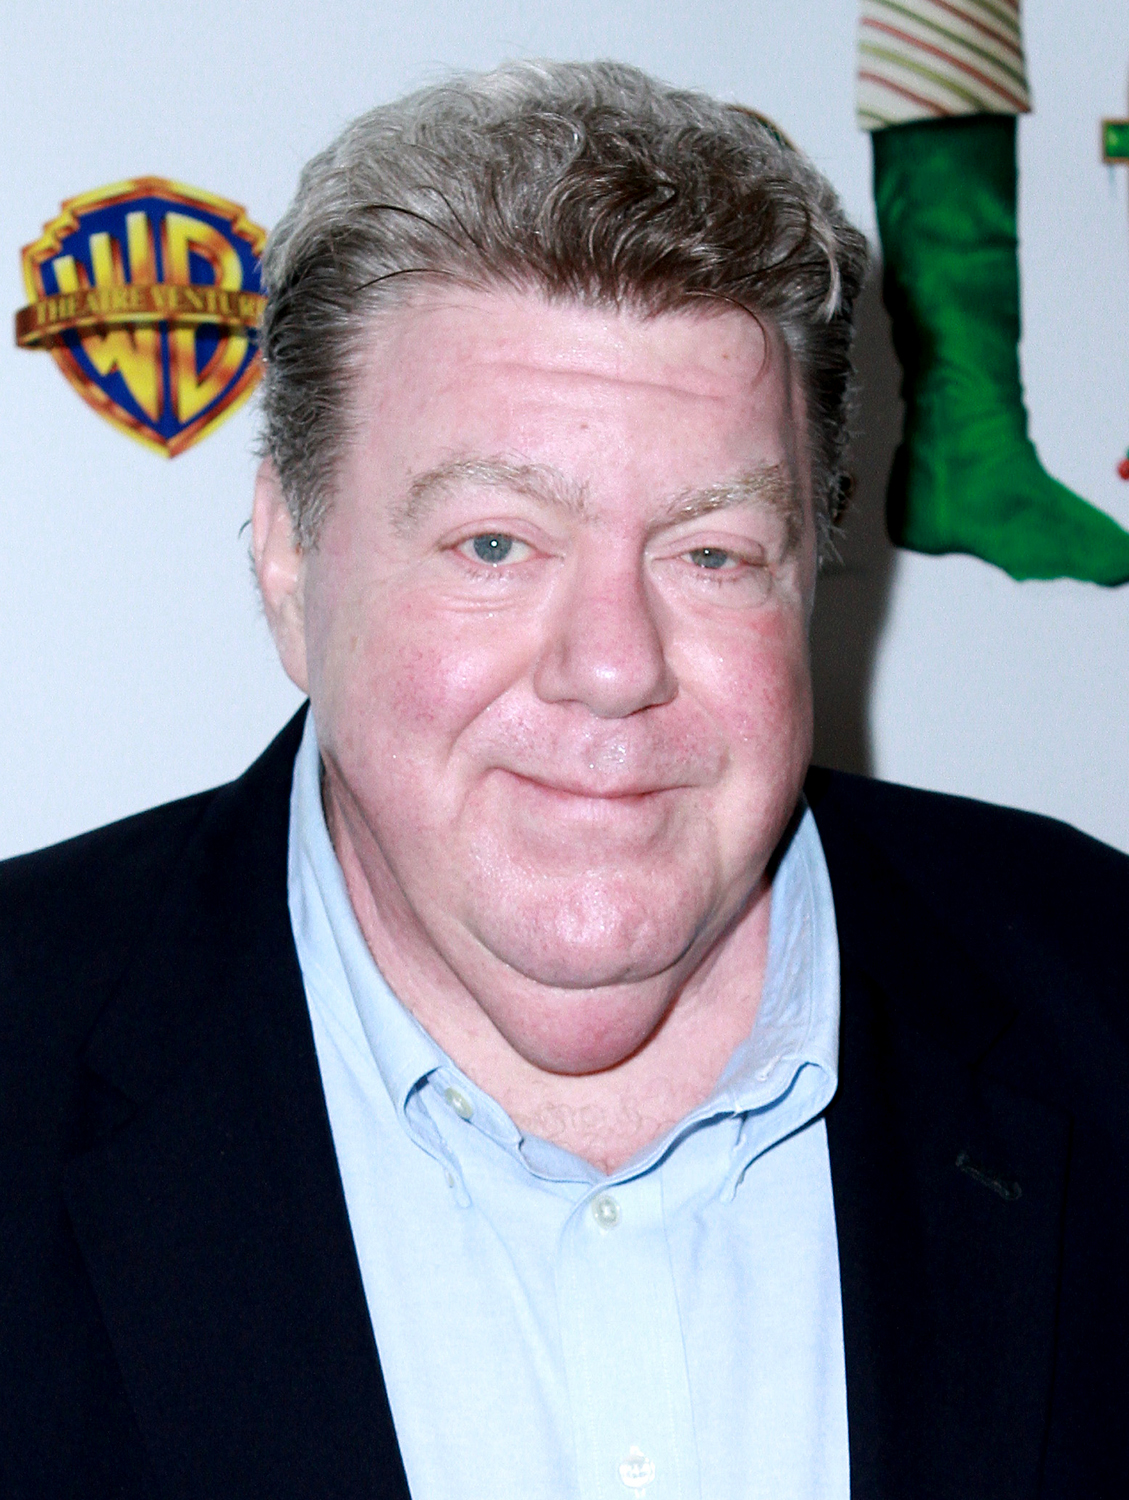 george wendt weight lossgeorge wendt 2016, george wendt wife, george wendt net worth, george wendt cheers, george wendt imdb, george wendt nephew, george wendt movies, george wendt weight loss, george wendt height, george wendt snl, george wendt commercial, george wendt house, george wendt family, george wendt mash, george wendt portlandia, george wendt beans, george wendt brother, george wendt da bears, george wendt show, george wendt tv shows